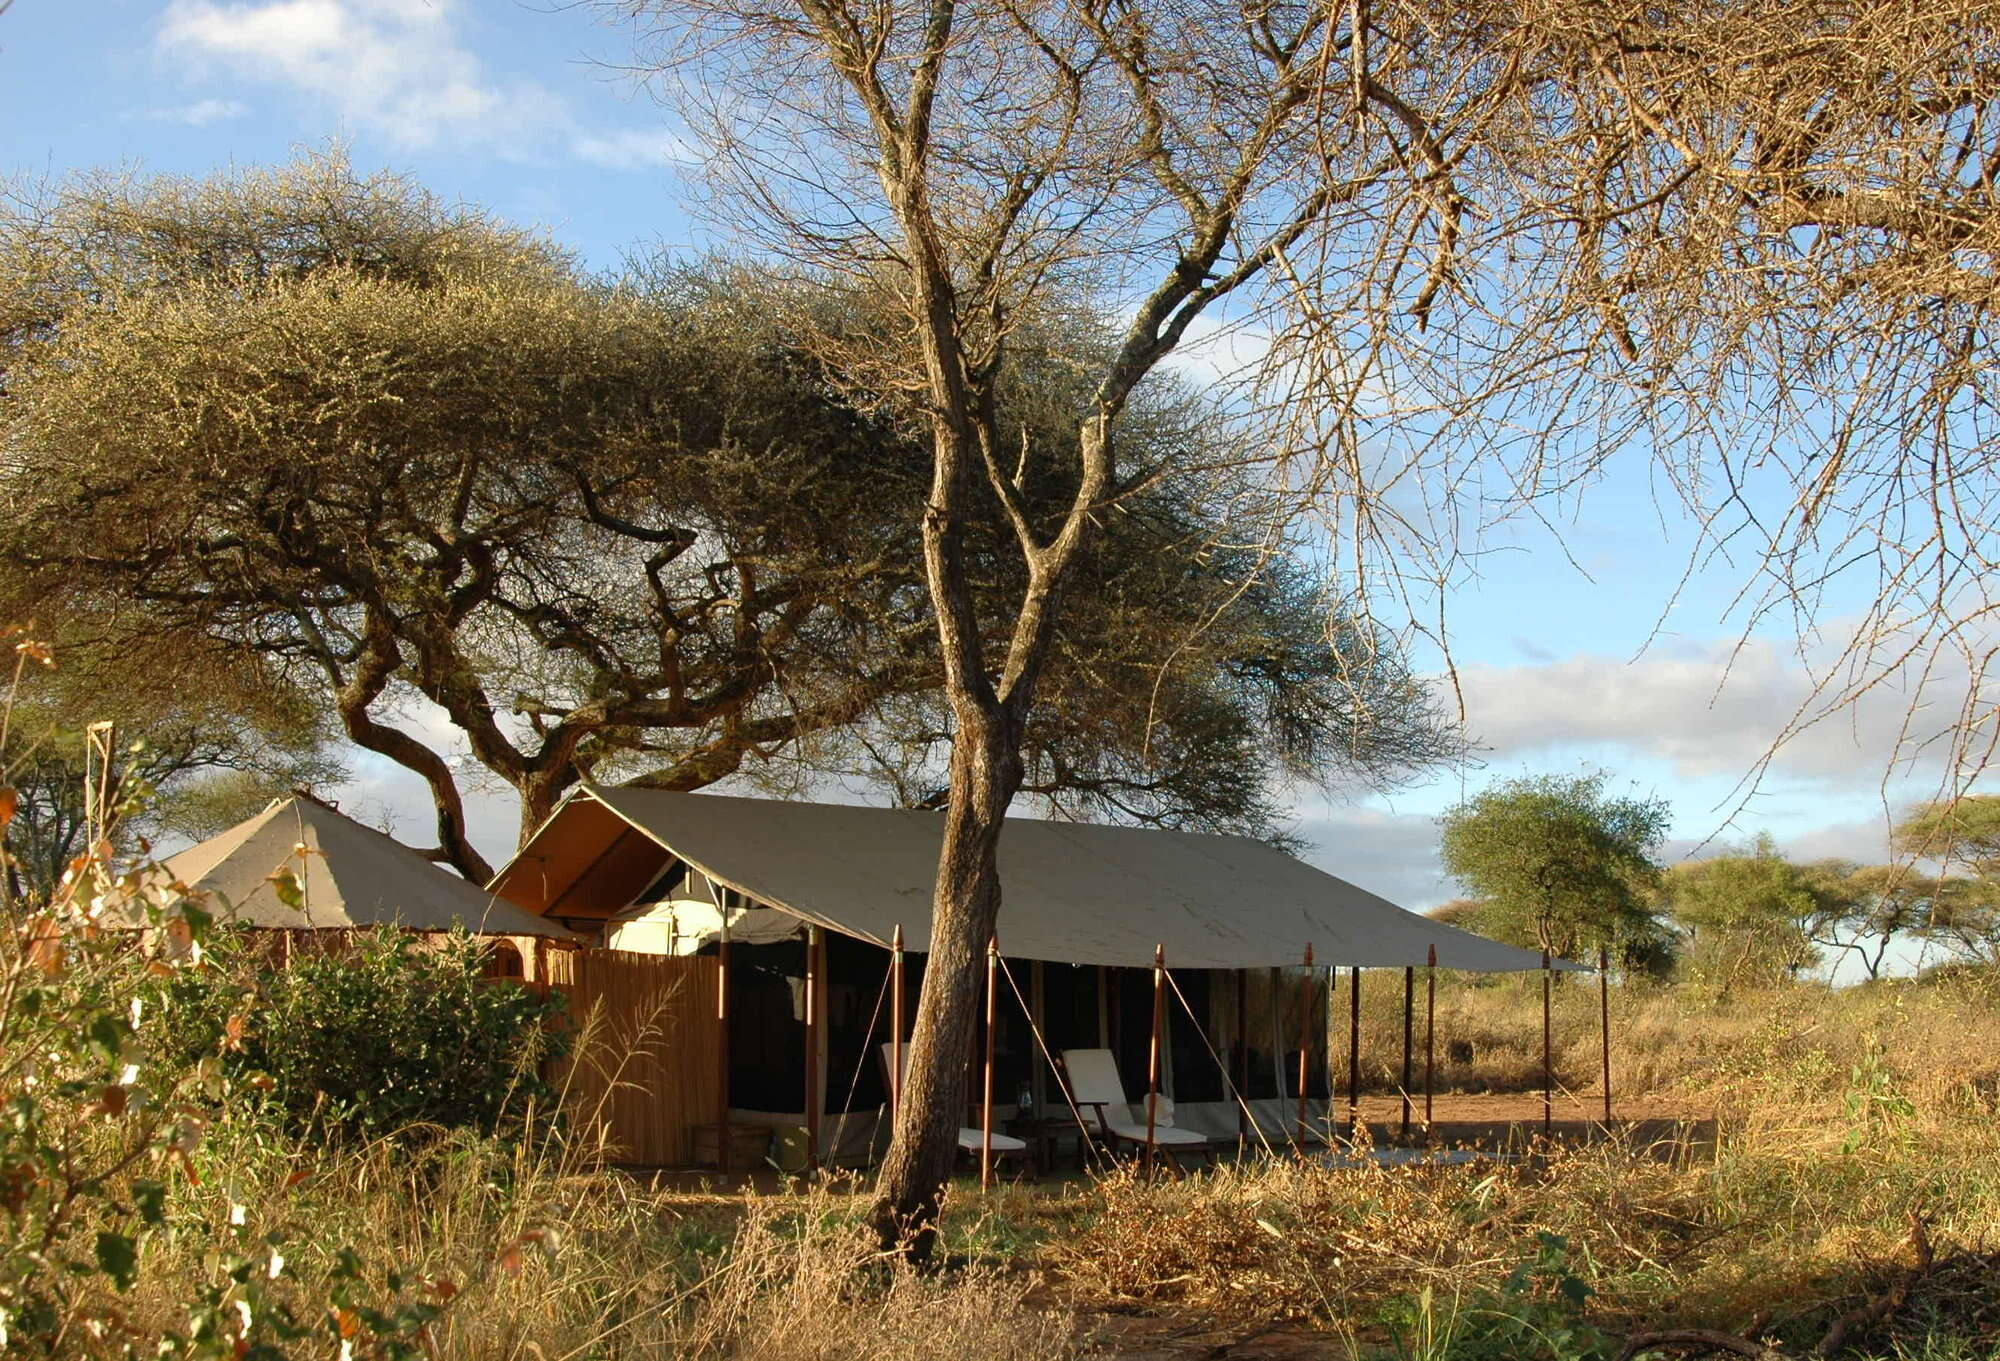 Safari holiday in northern Tanzania, including Oliver's Camp in Tarangire National Park, and Olakira and Sayari Camp in the Serengeti.